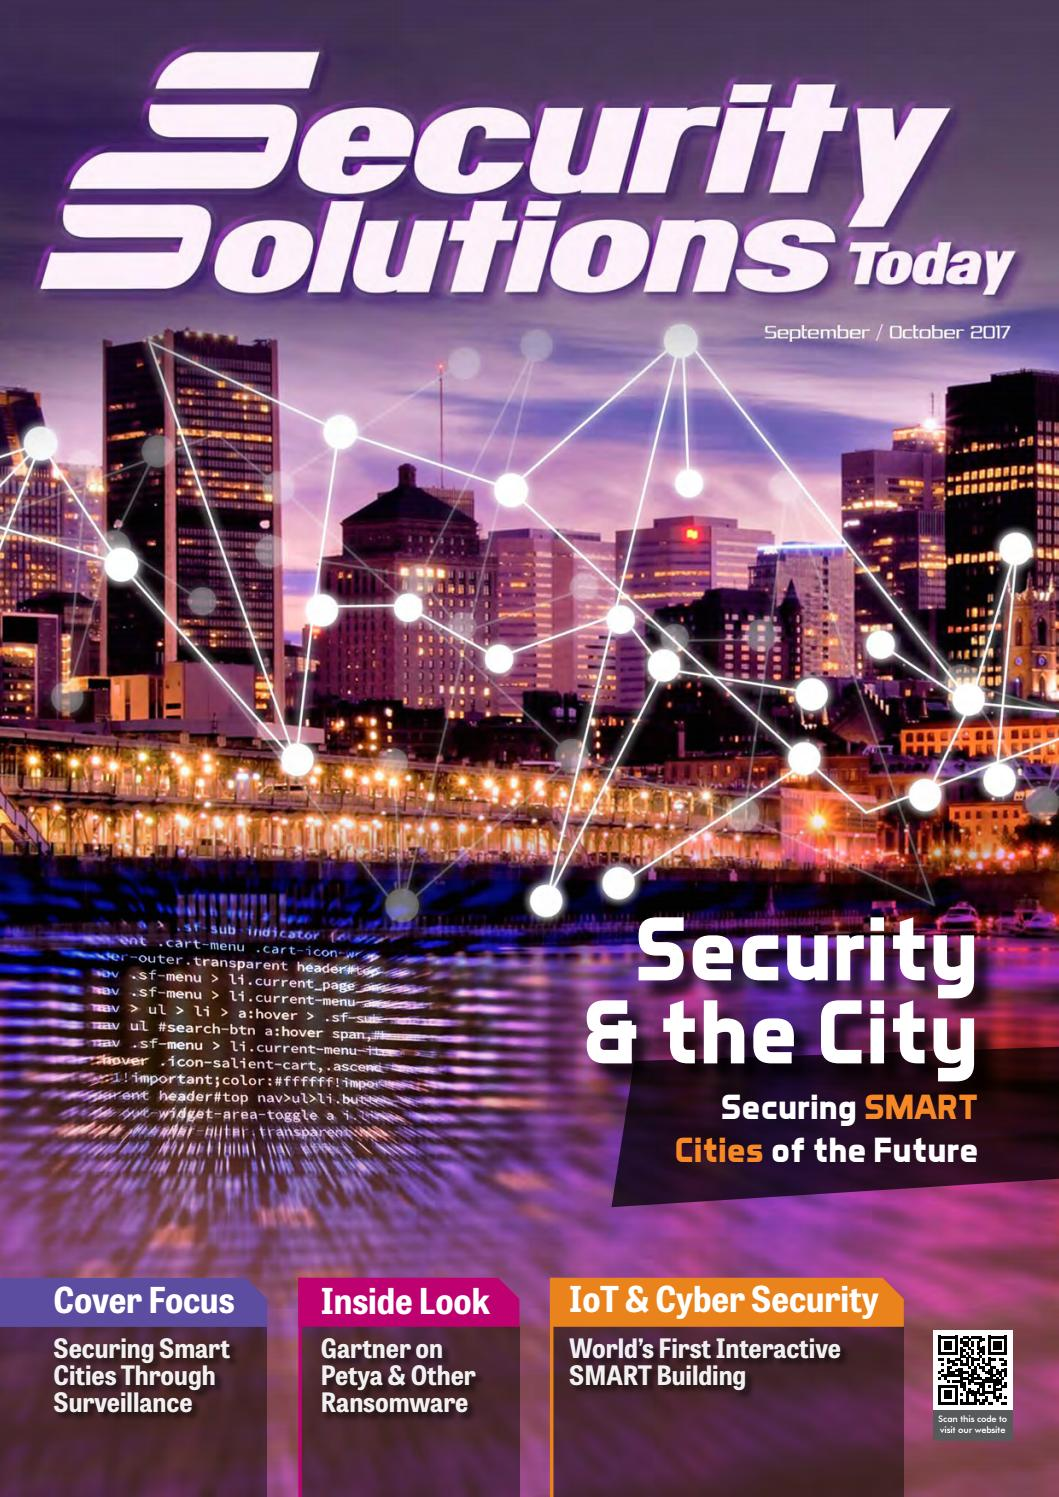 Security Solutions Today Sep Oct 2017 By Hot Springs Heater Circuit Board With Trace Saver Issuu